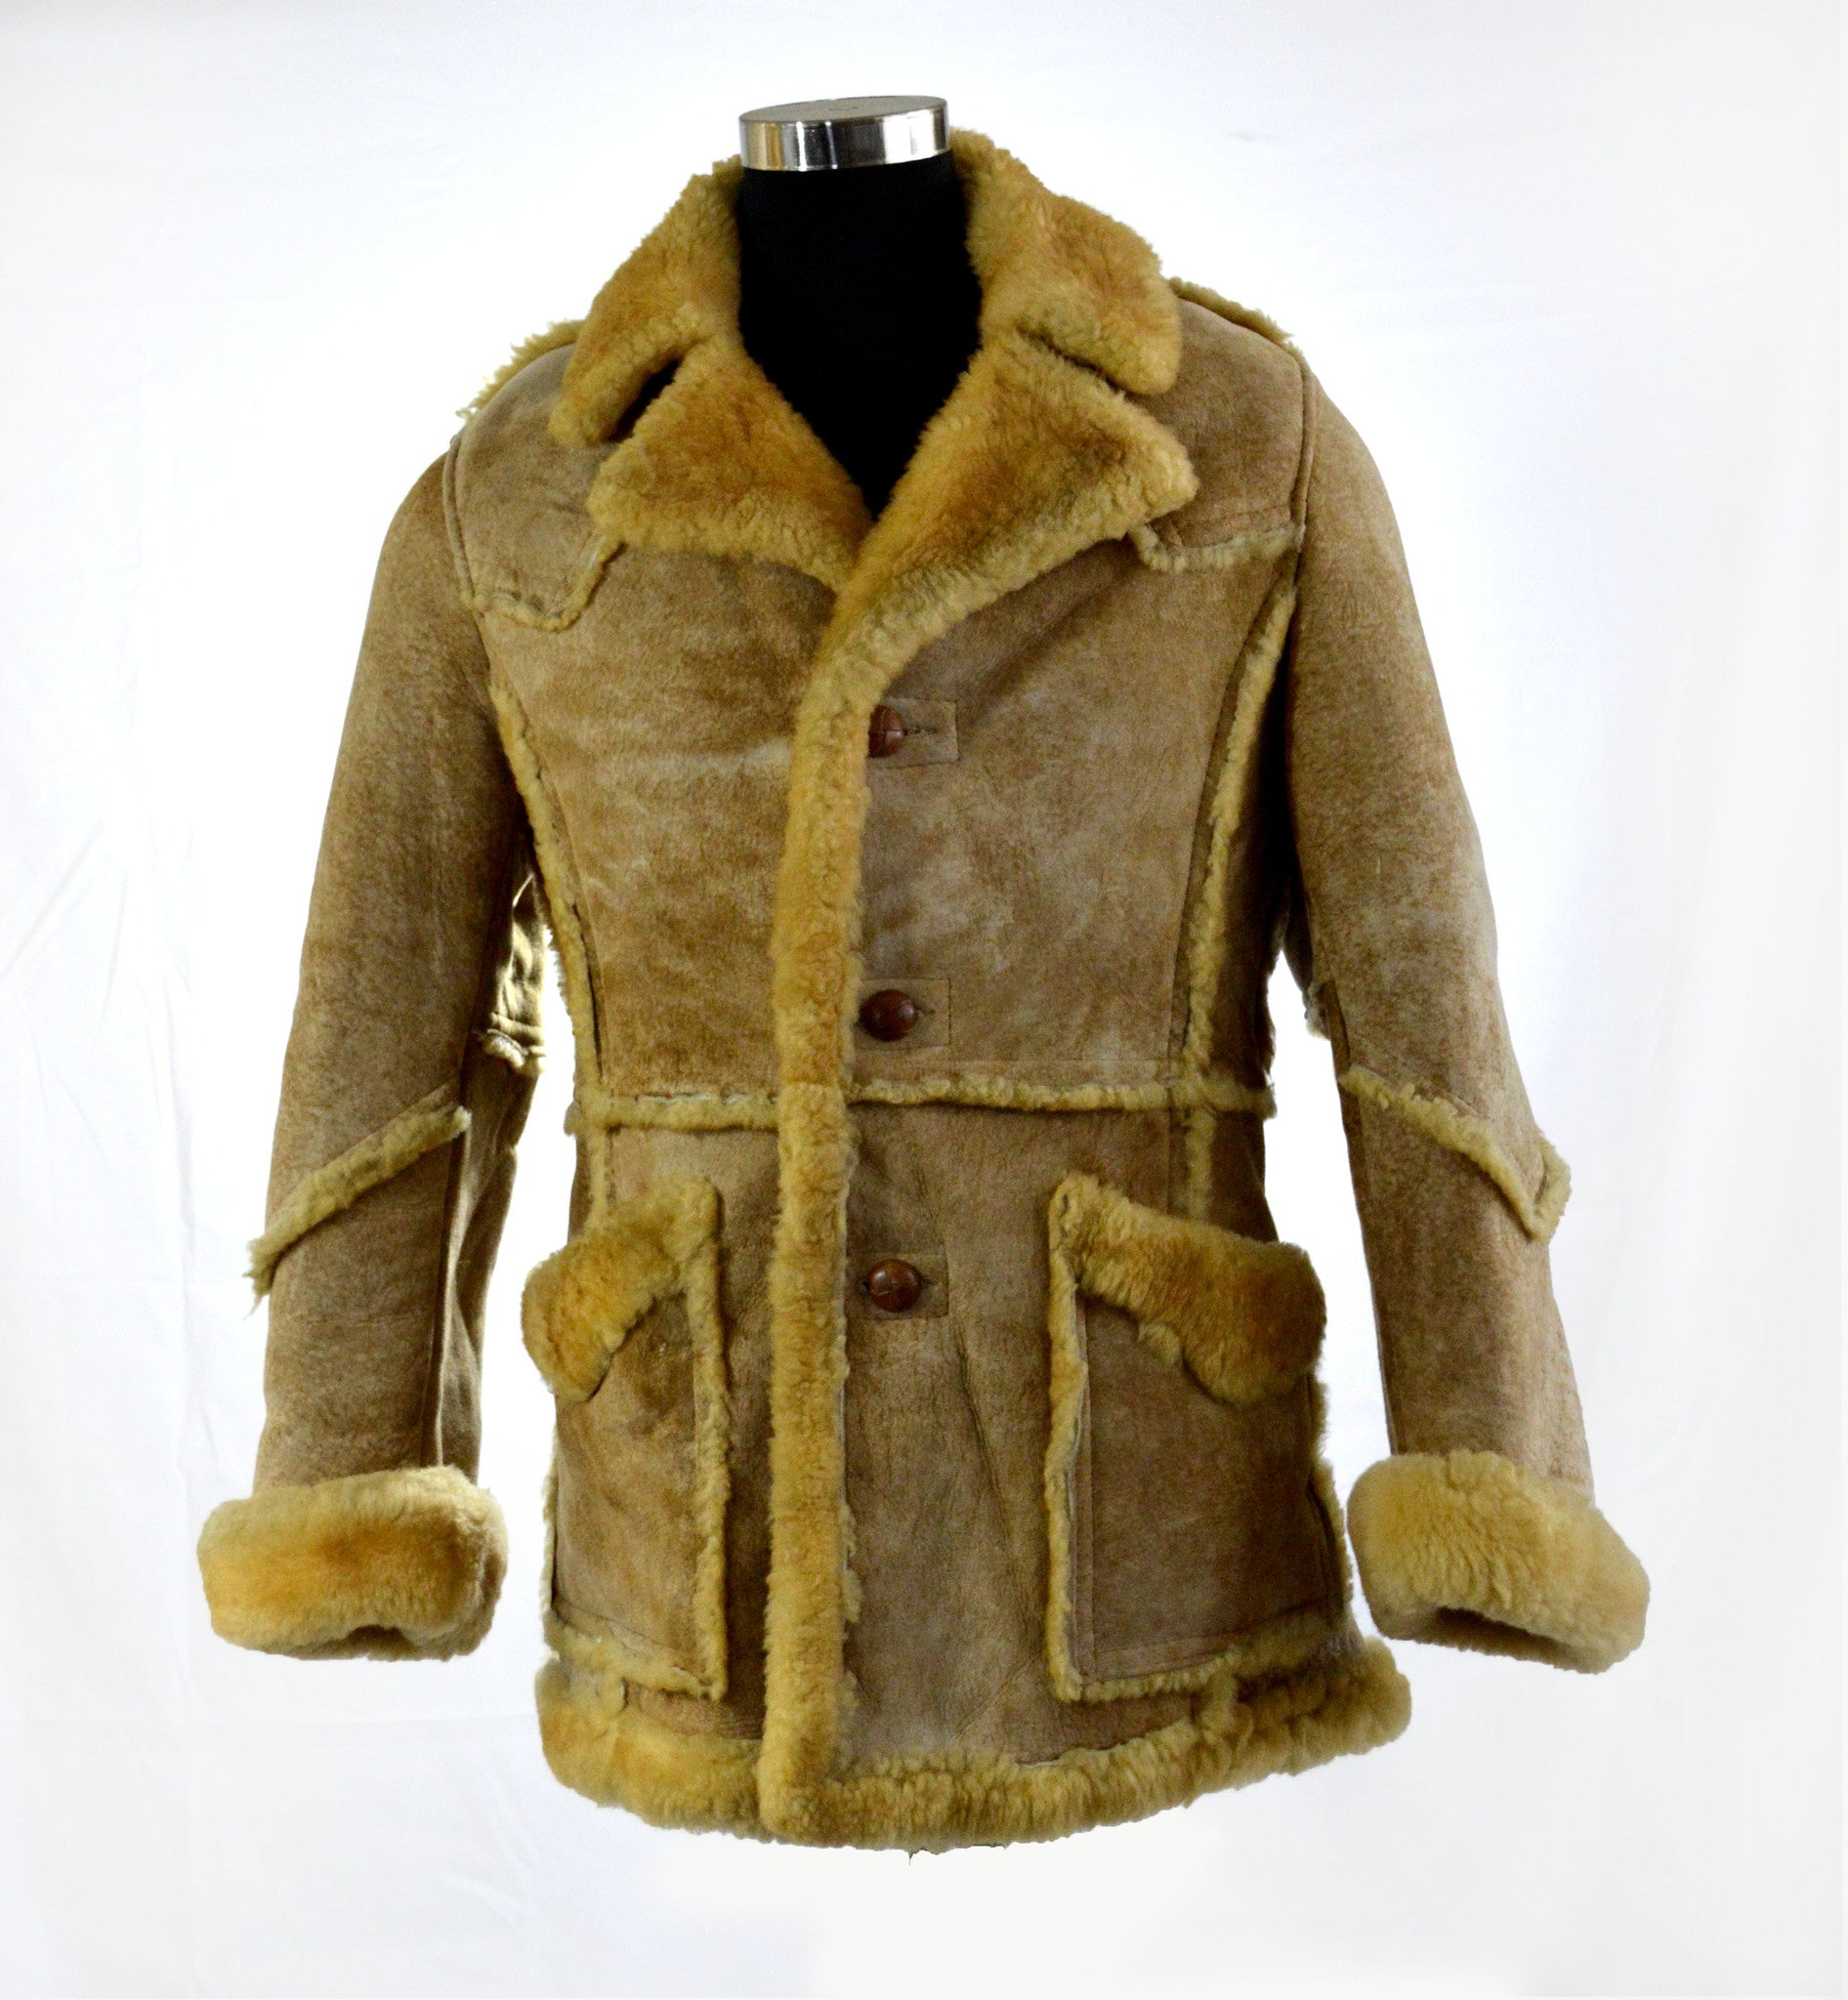 The Tan Winter Coat